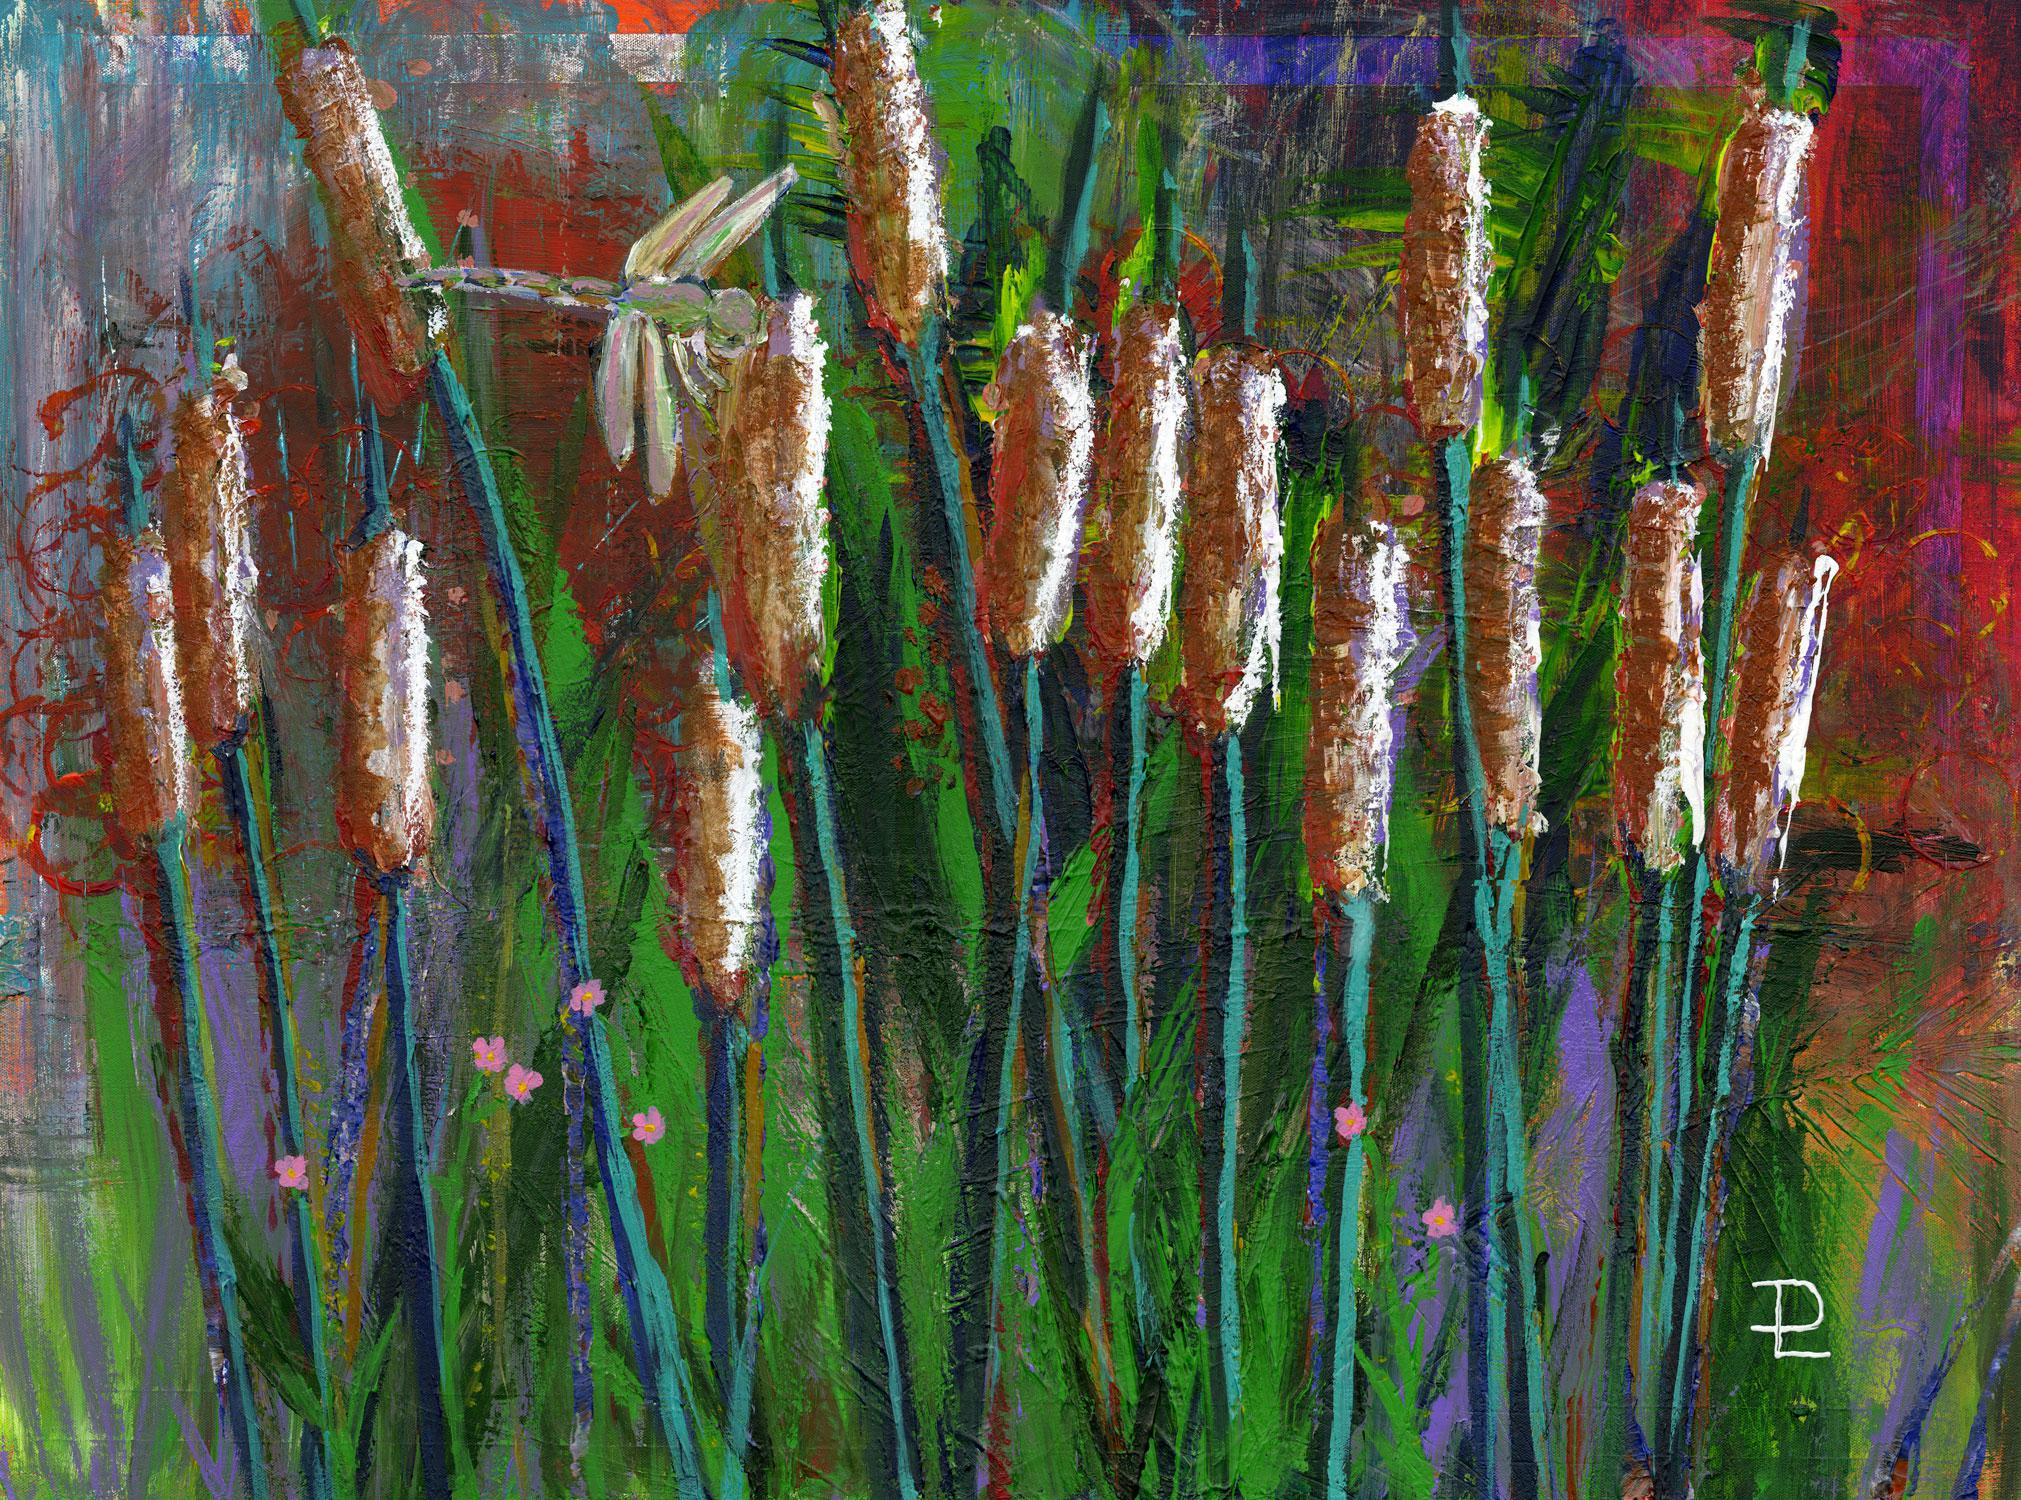 Cattails artwork by Debbee Lotito - art listed for sale on Artplode